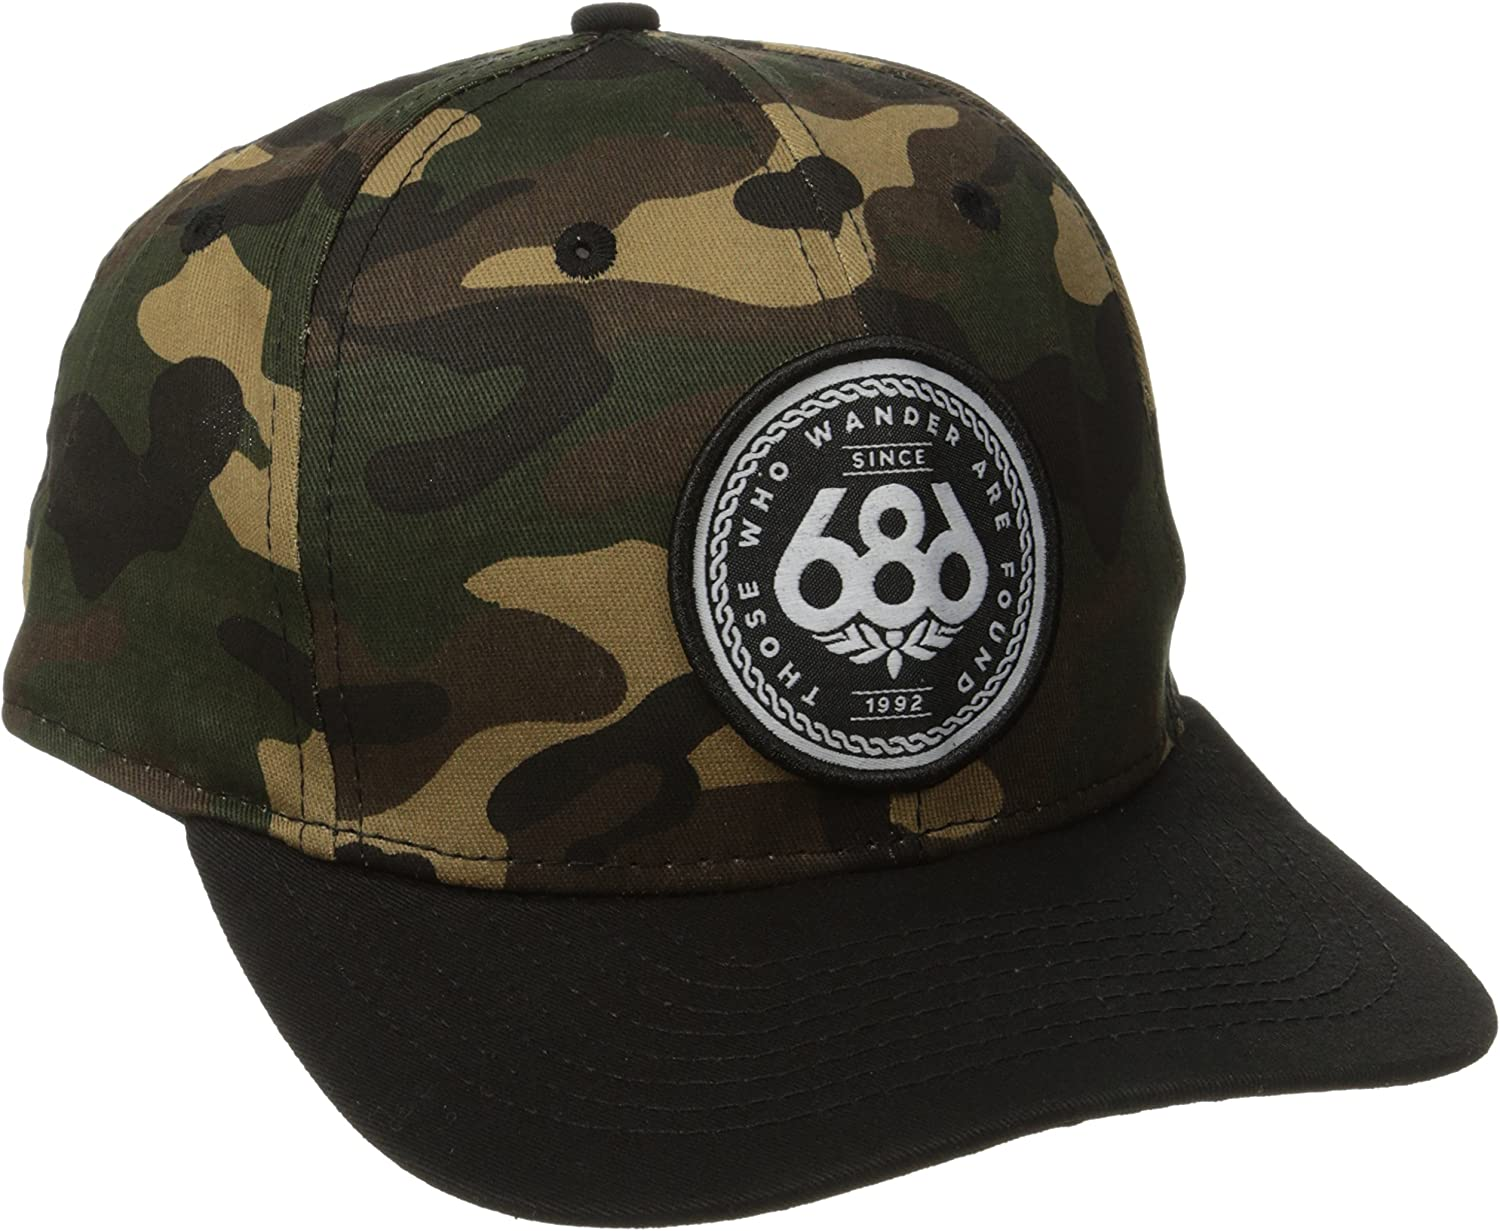 Recommendation It is very popular 686 Men's Wander Snap Hat Back